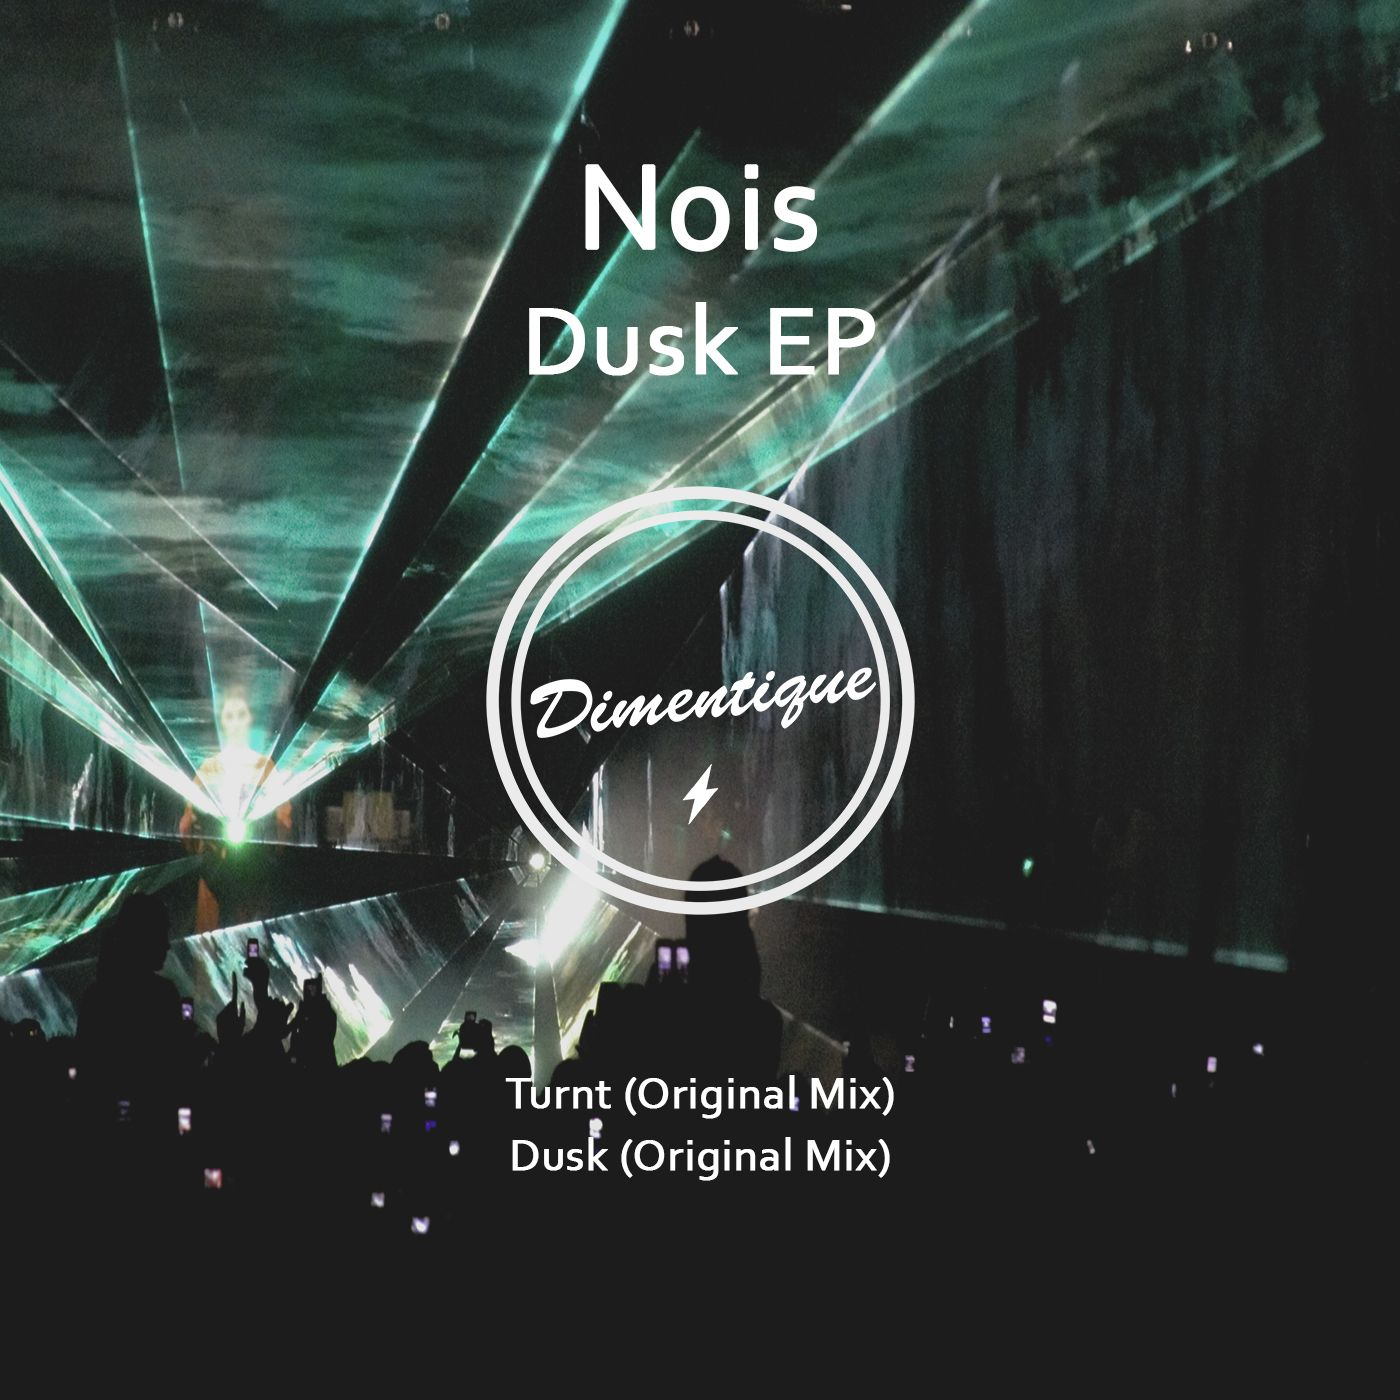 dimentique_new_art_2016_nois_dusk_ep.jpg